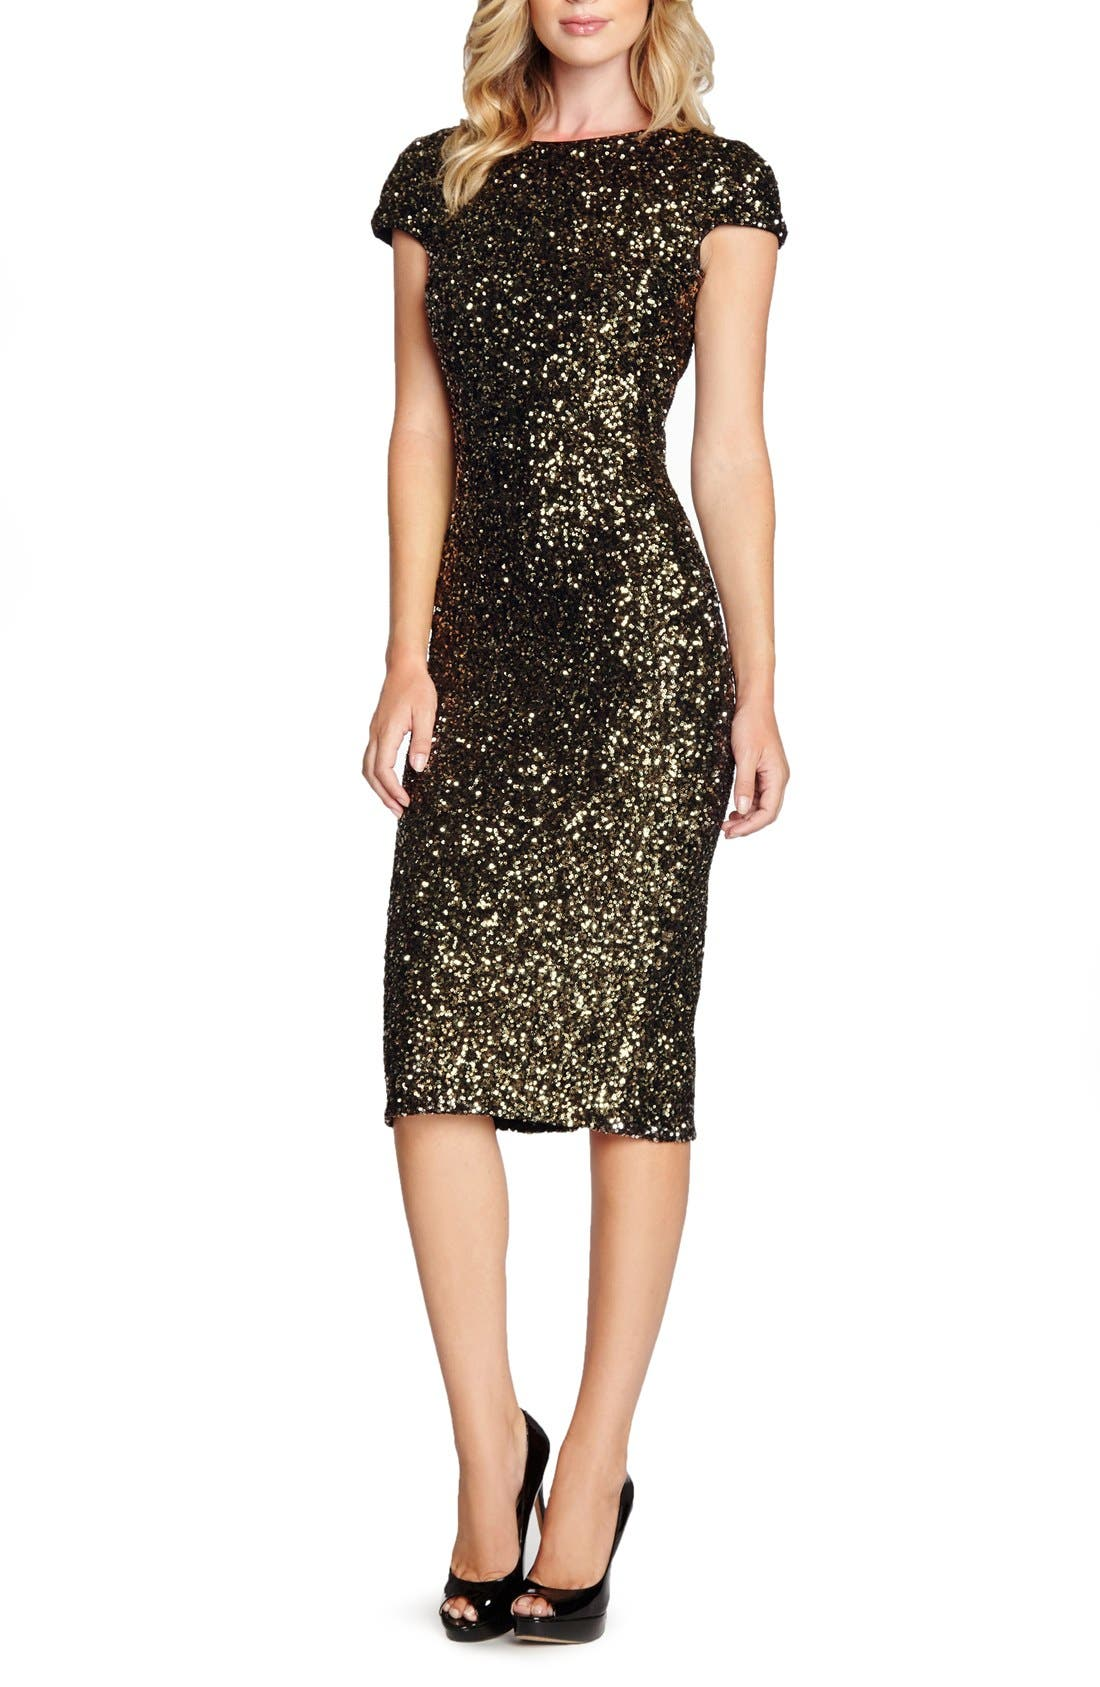 Main Image - Dress the Population 'Marcella' Open Back Sequin Body-Con Dress